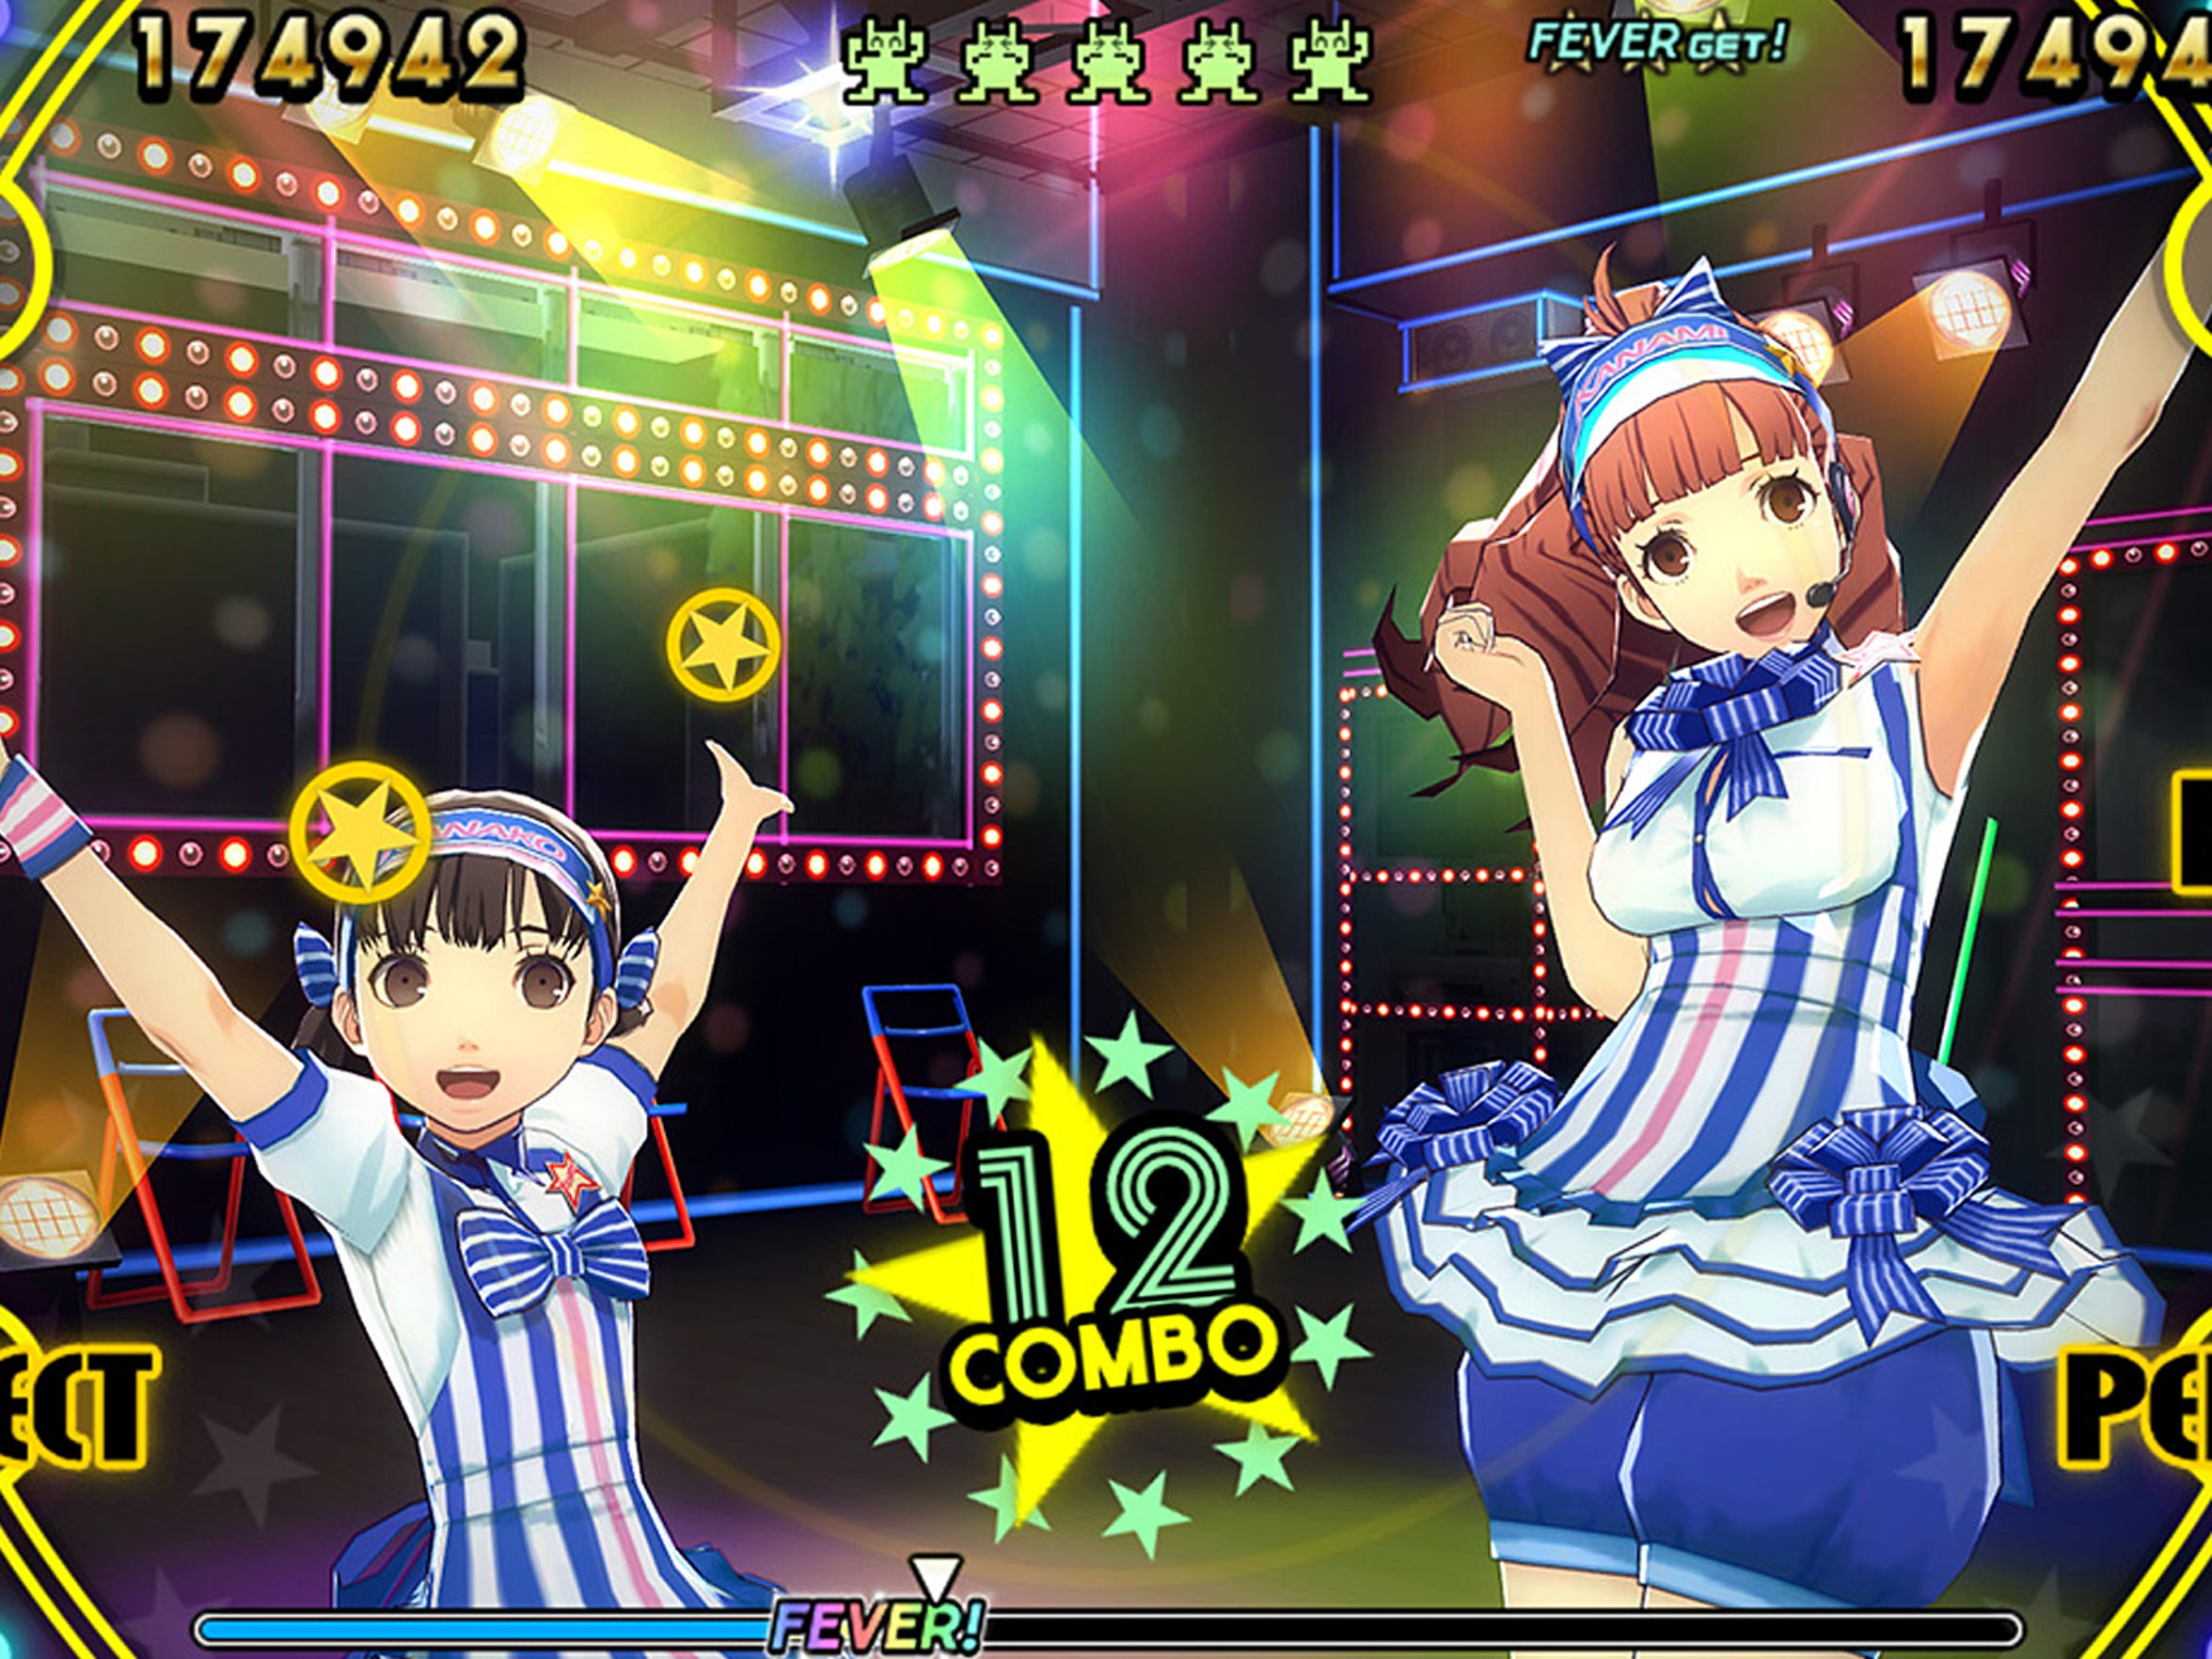 """Persona 4: Dancing All Night"" features a user interface that puts timing nodes on the sides of the screen."